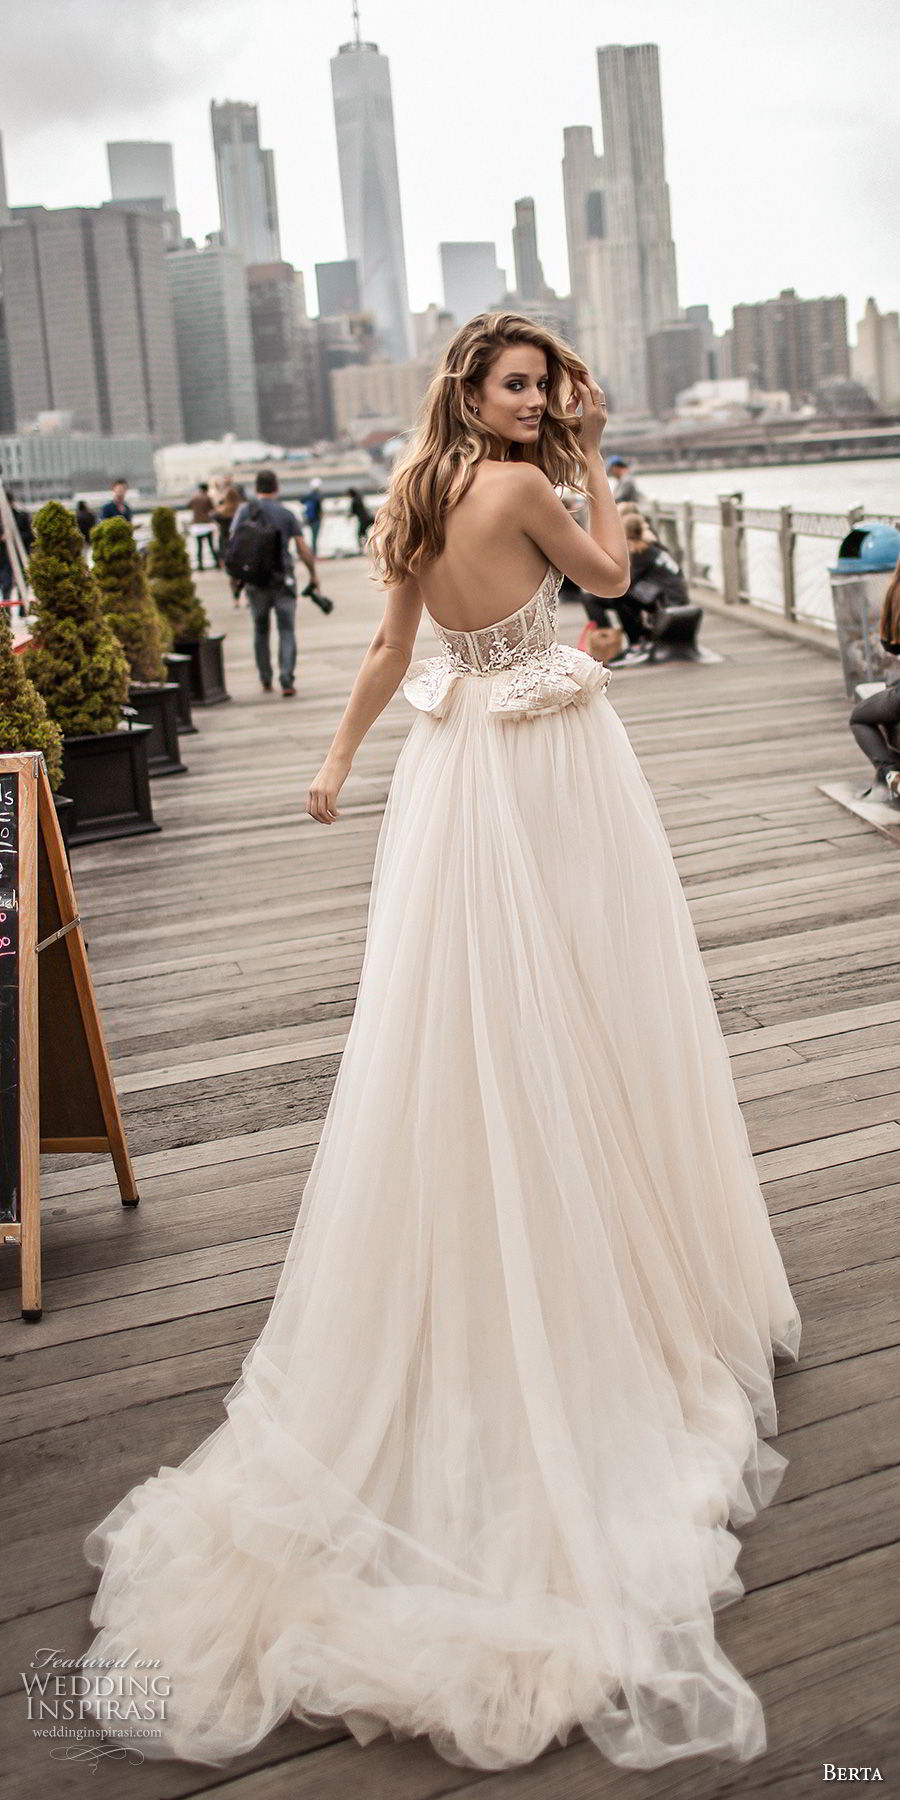 5e3547fb644f9 berta spring 2018 bridal strapless sweetheart neckline heavily embellished  bodice bustier sexy romantic ball gown wedding